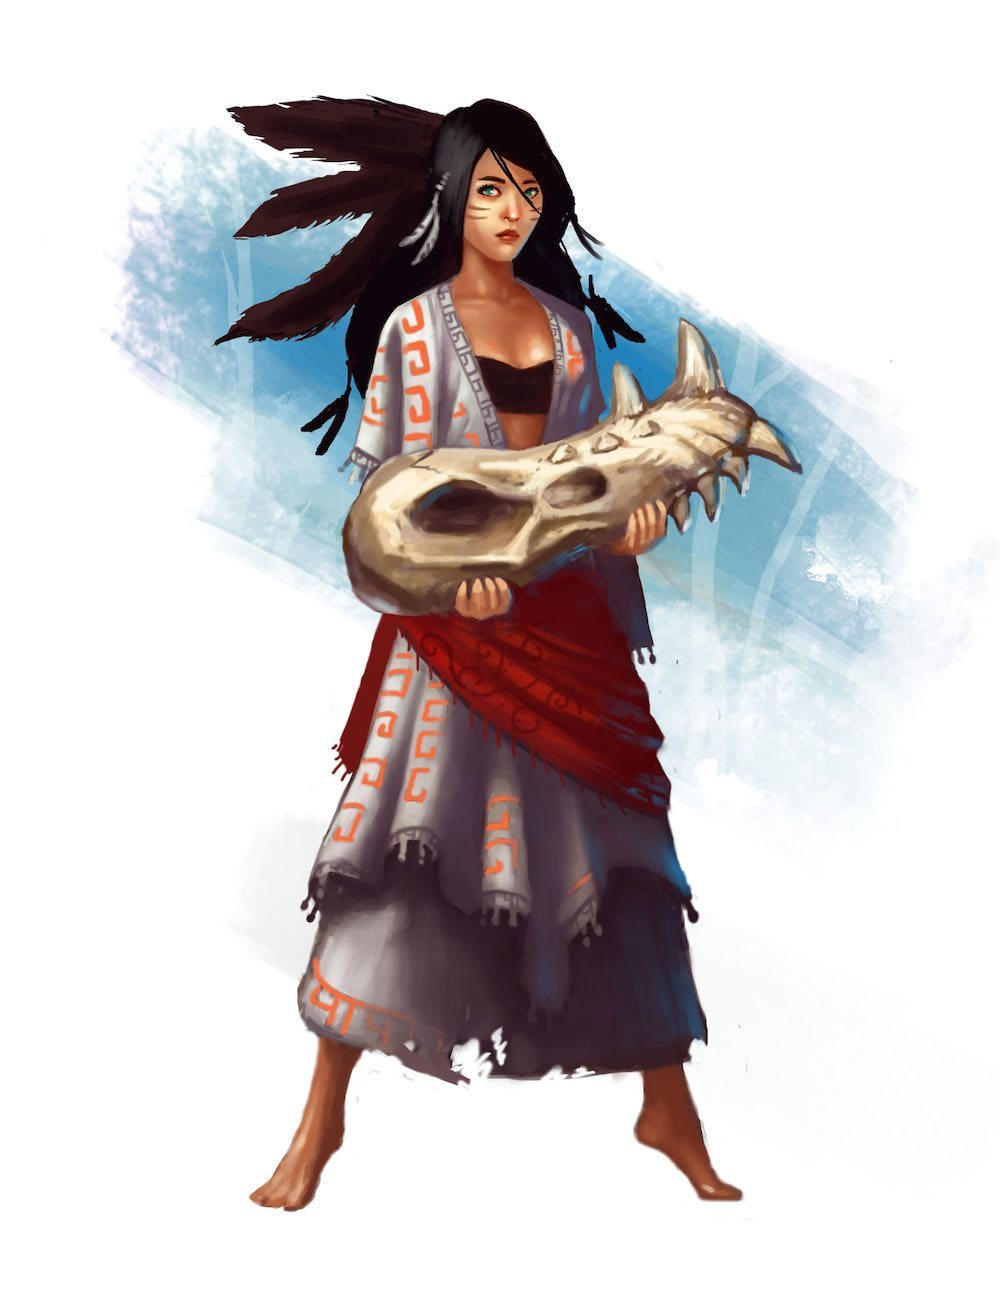 Khasa the Gypsy by Bob Kehl